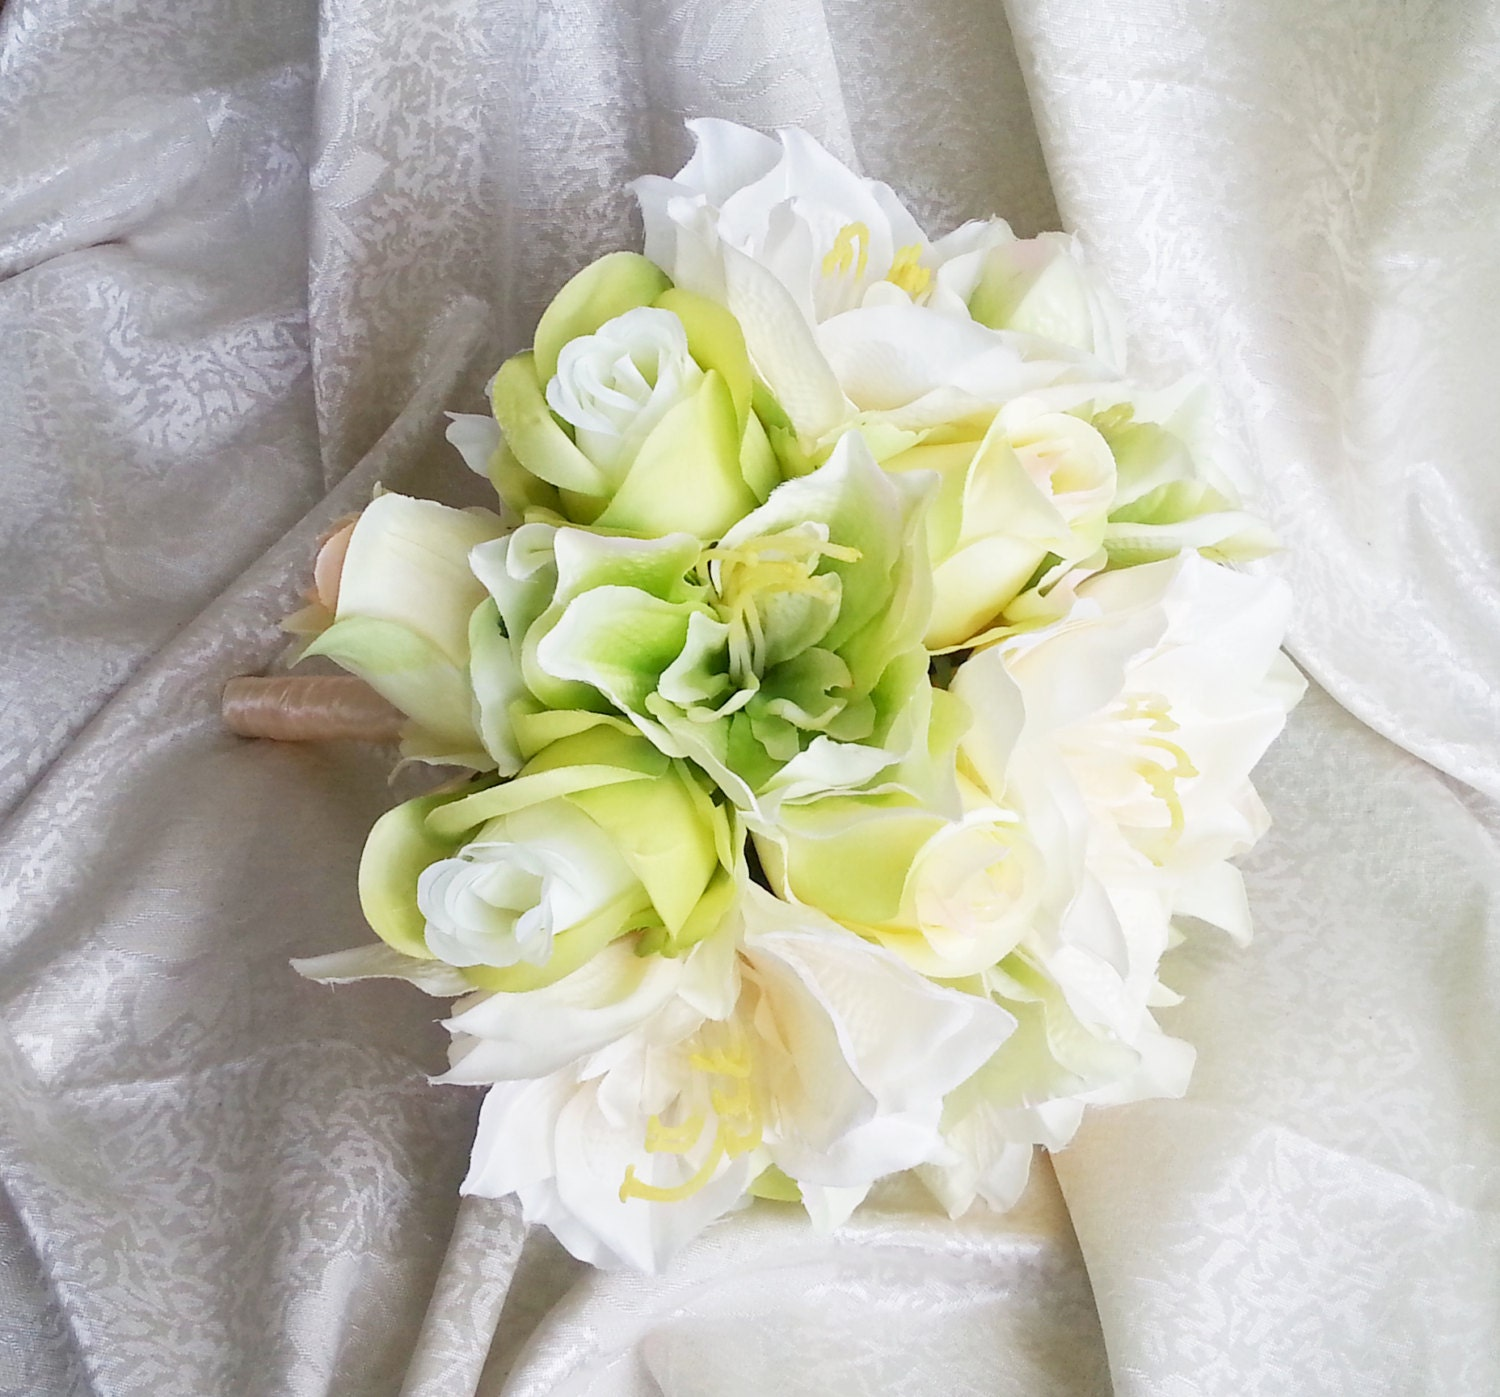 Green silk flowers wedding bouquet greenery lime green cream roses green silk flowers wedding bouquet greenery lime green cream roses lily satin ribbon bridal bridesmaids cheap mightylinksfo Images